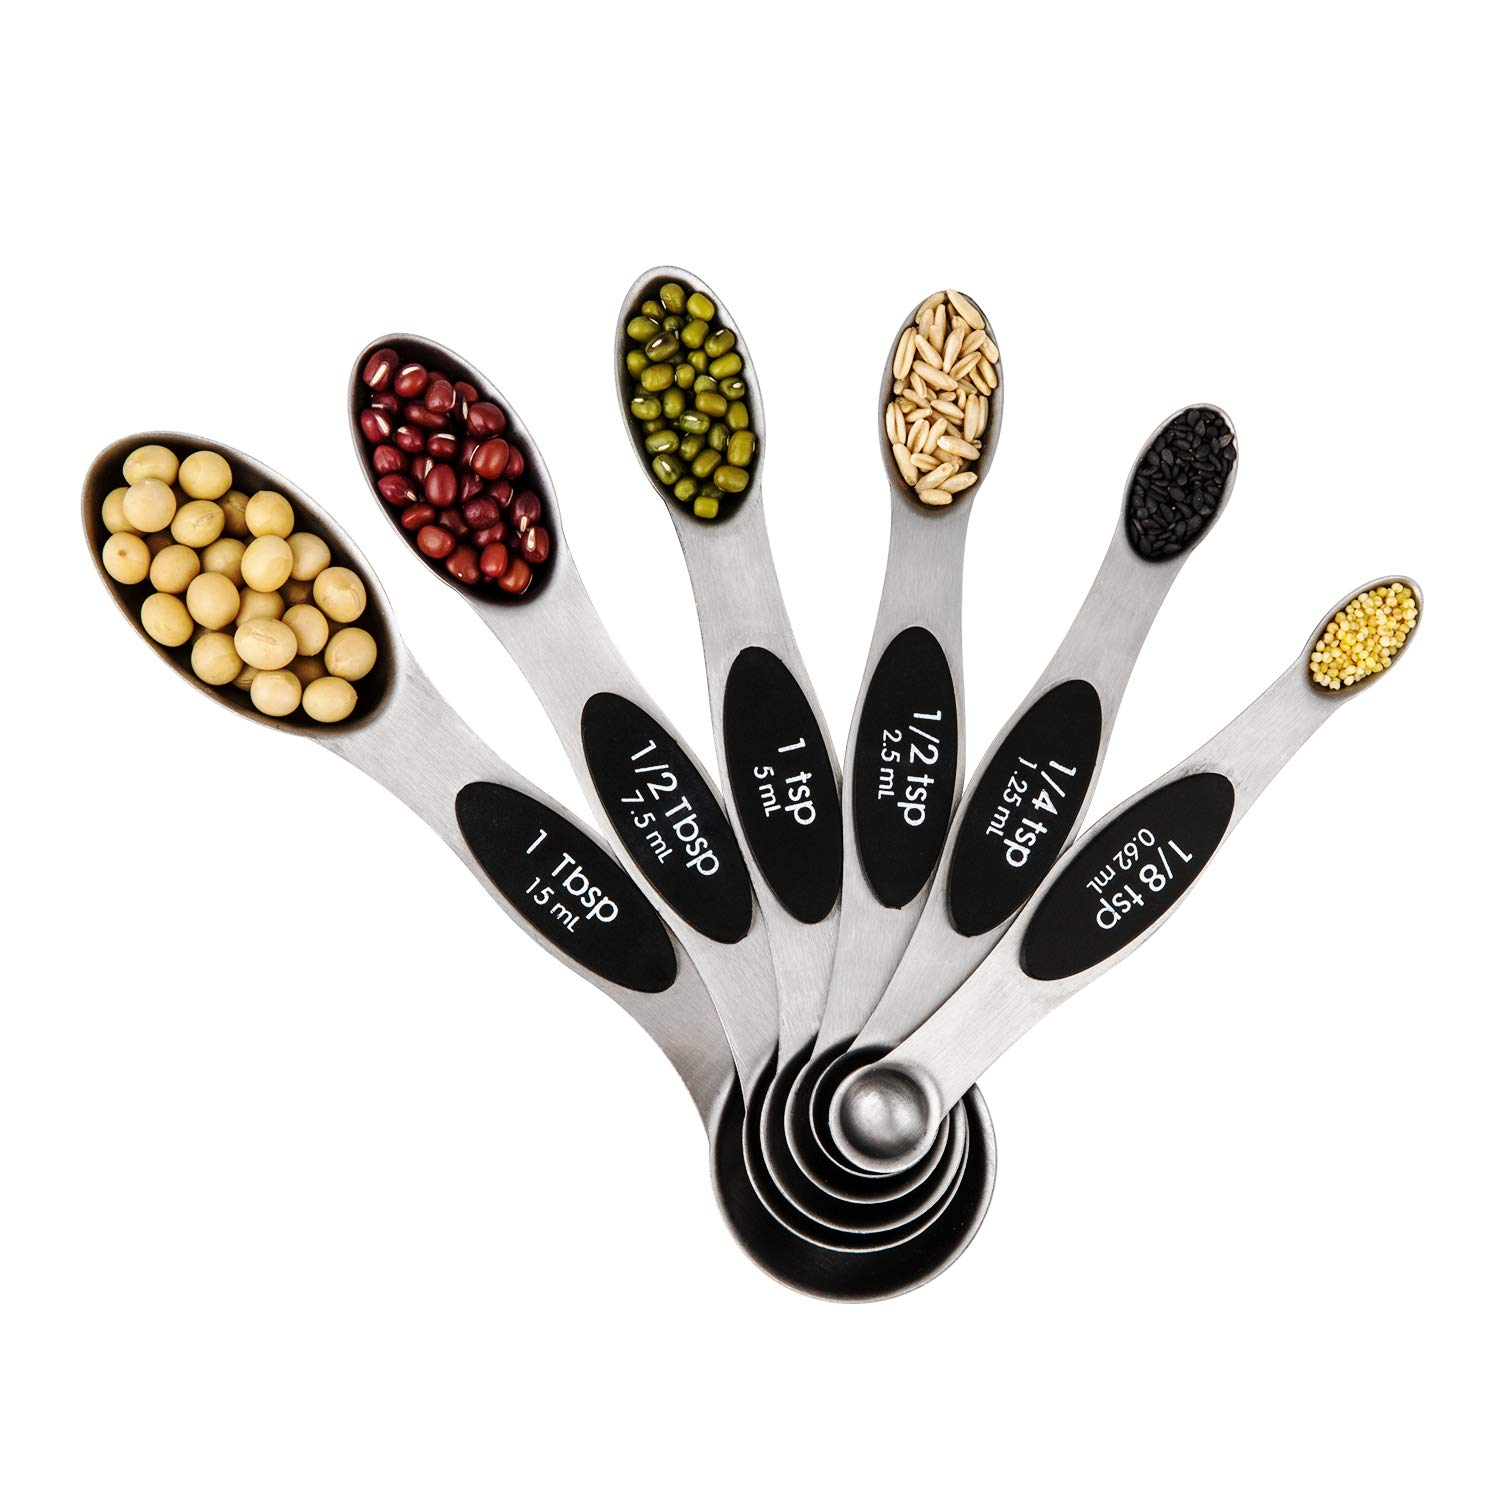 Magnetic Measuring Spoons Set, Dual Sided, Stainless Steel, Fits in Exact Measurement of Ingredients for Cooking & Baking and Spice Jars, Set of 6